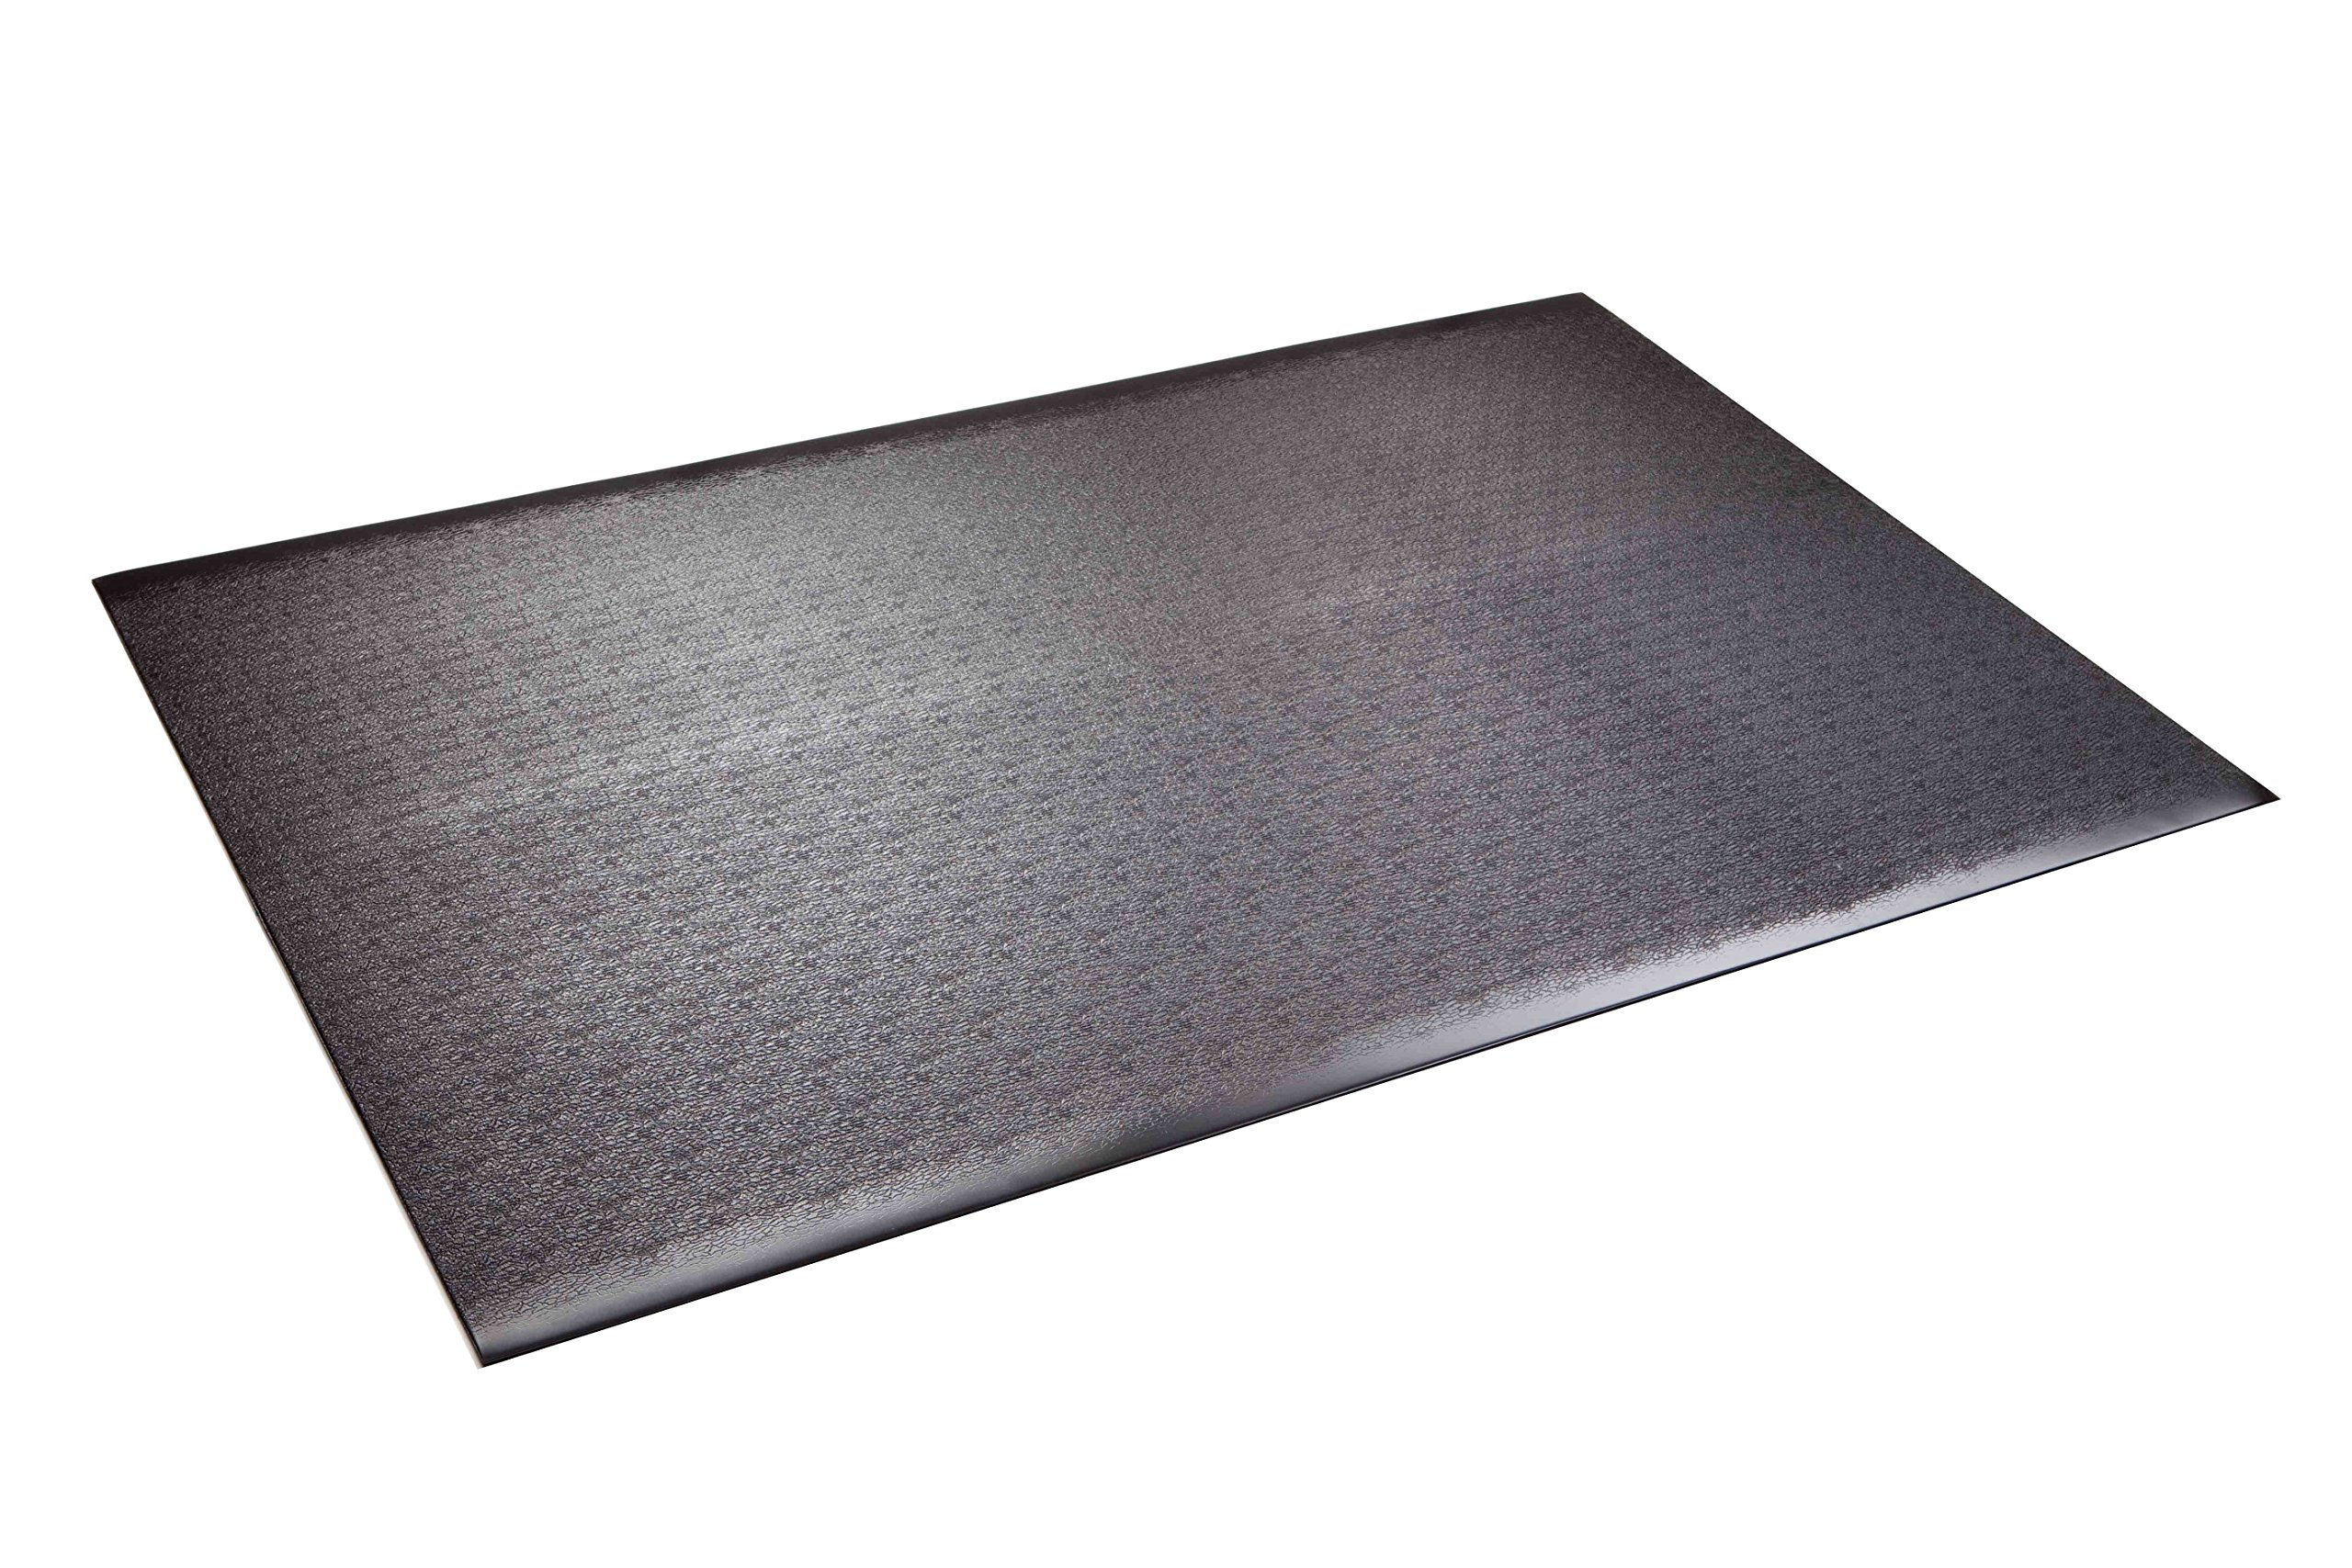 SuperMats High Density Commercial Grade Solid Equipment Mat 24GS Made in U.S.A. for Home Gyms CrossFit Training Flooring Weight Benches, Weightlifting Equipment and General Flooring and Equipment Mat Needs  (4 Feet x 6 Feet)   (48'' x 72'') (121.9 cm x 182.